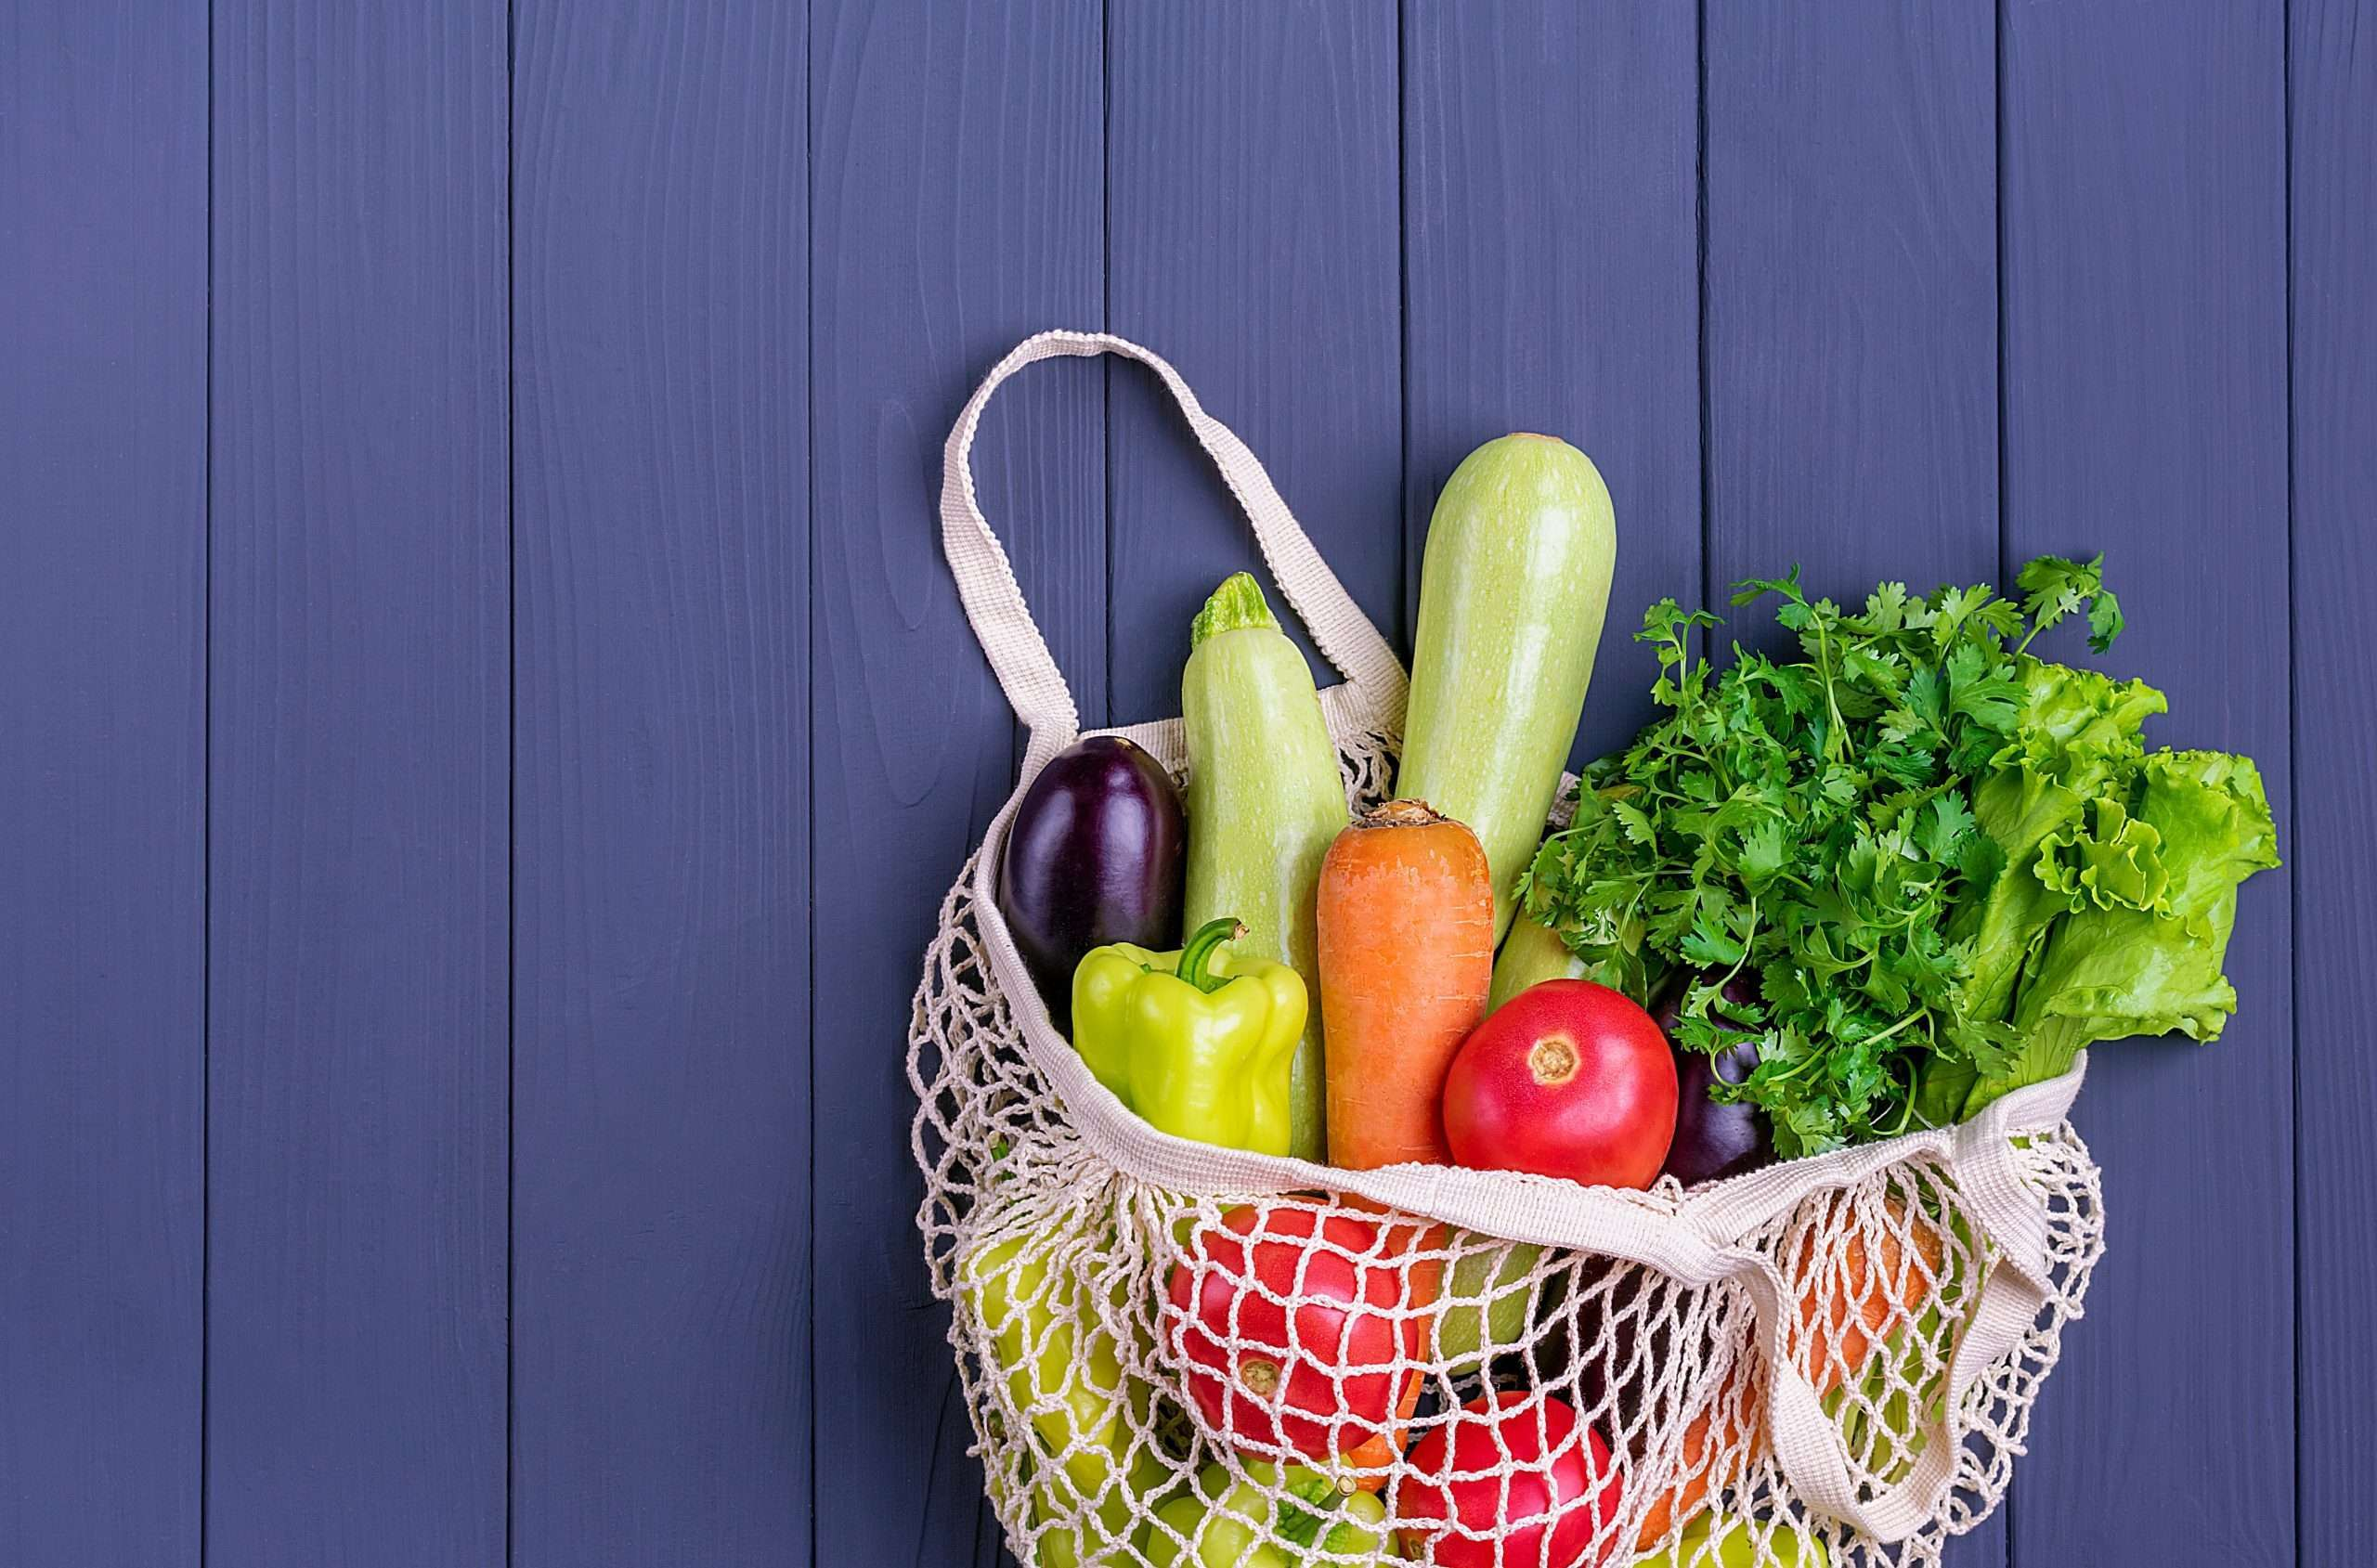 Here Are 5 Reasons To Switch To An Organic Lifestyle